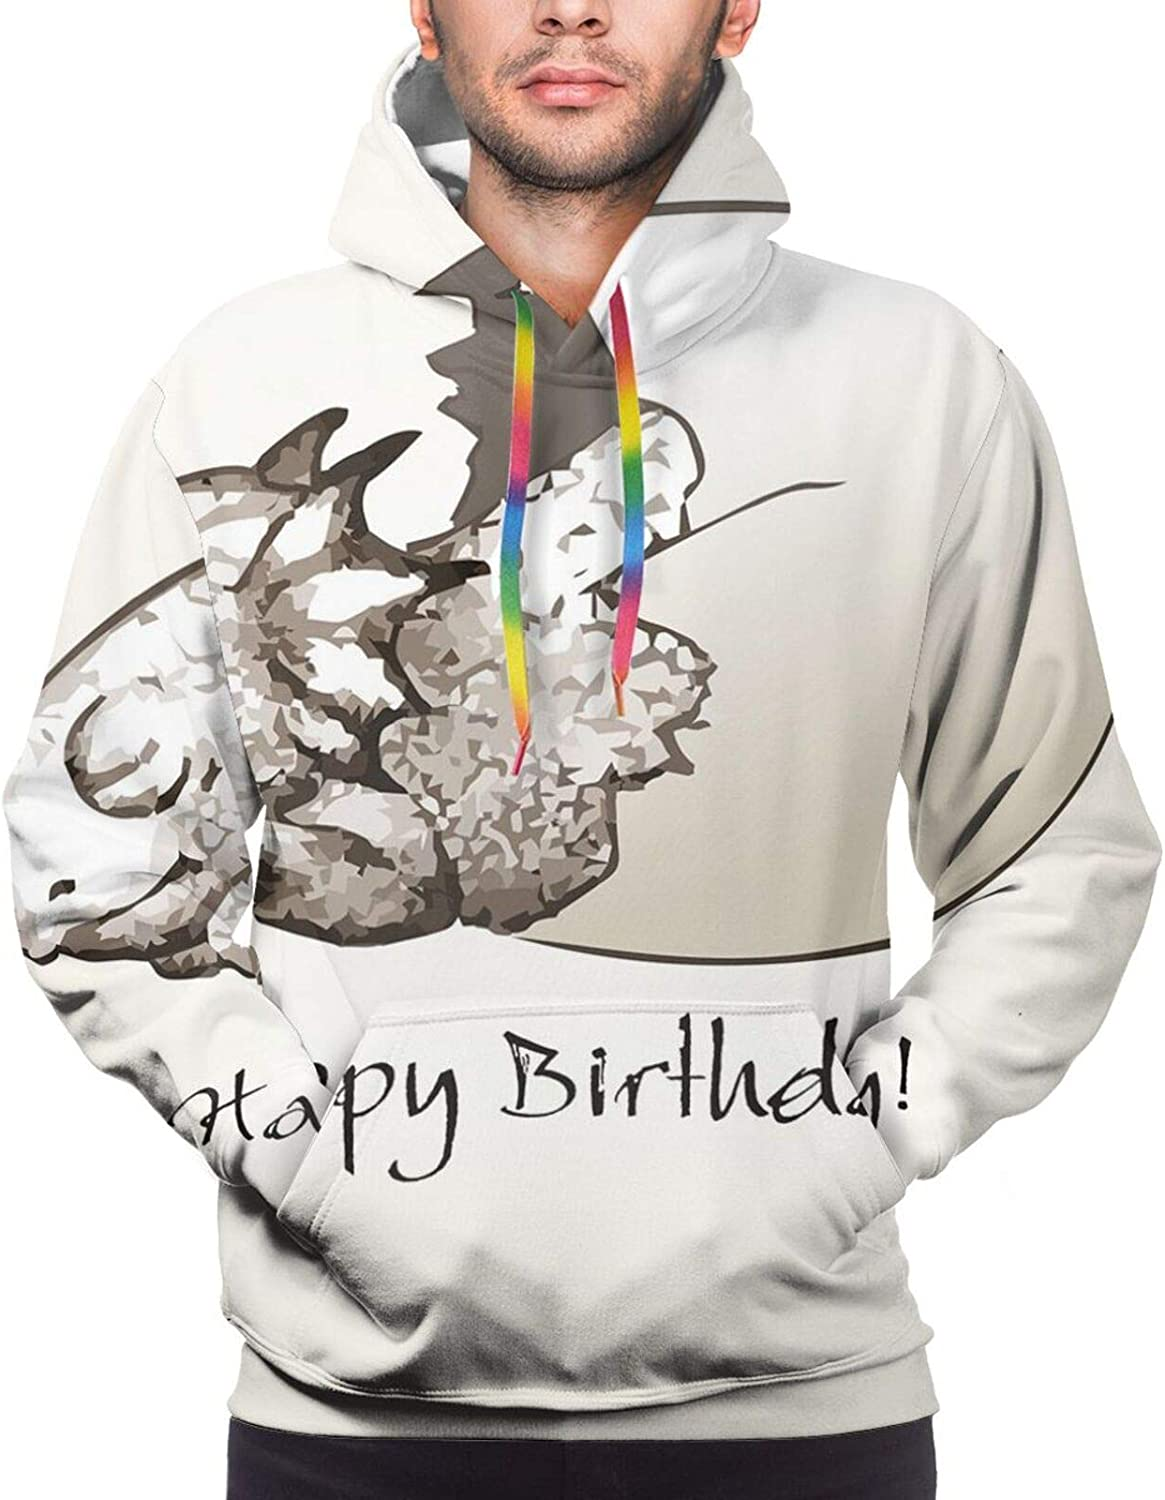 Men's Hoodies Sweatshirts,Happy Birthday Ribbon with Geometrical Castle Boat and Shapes Image Print